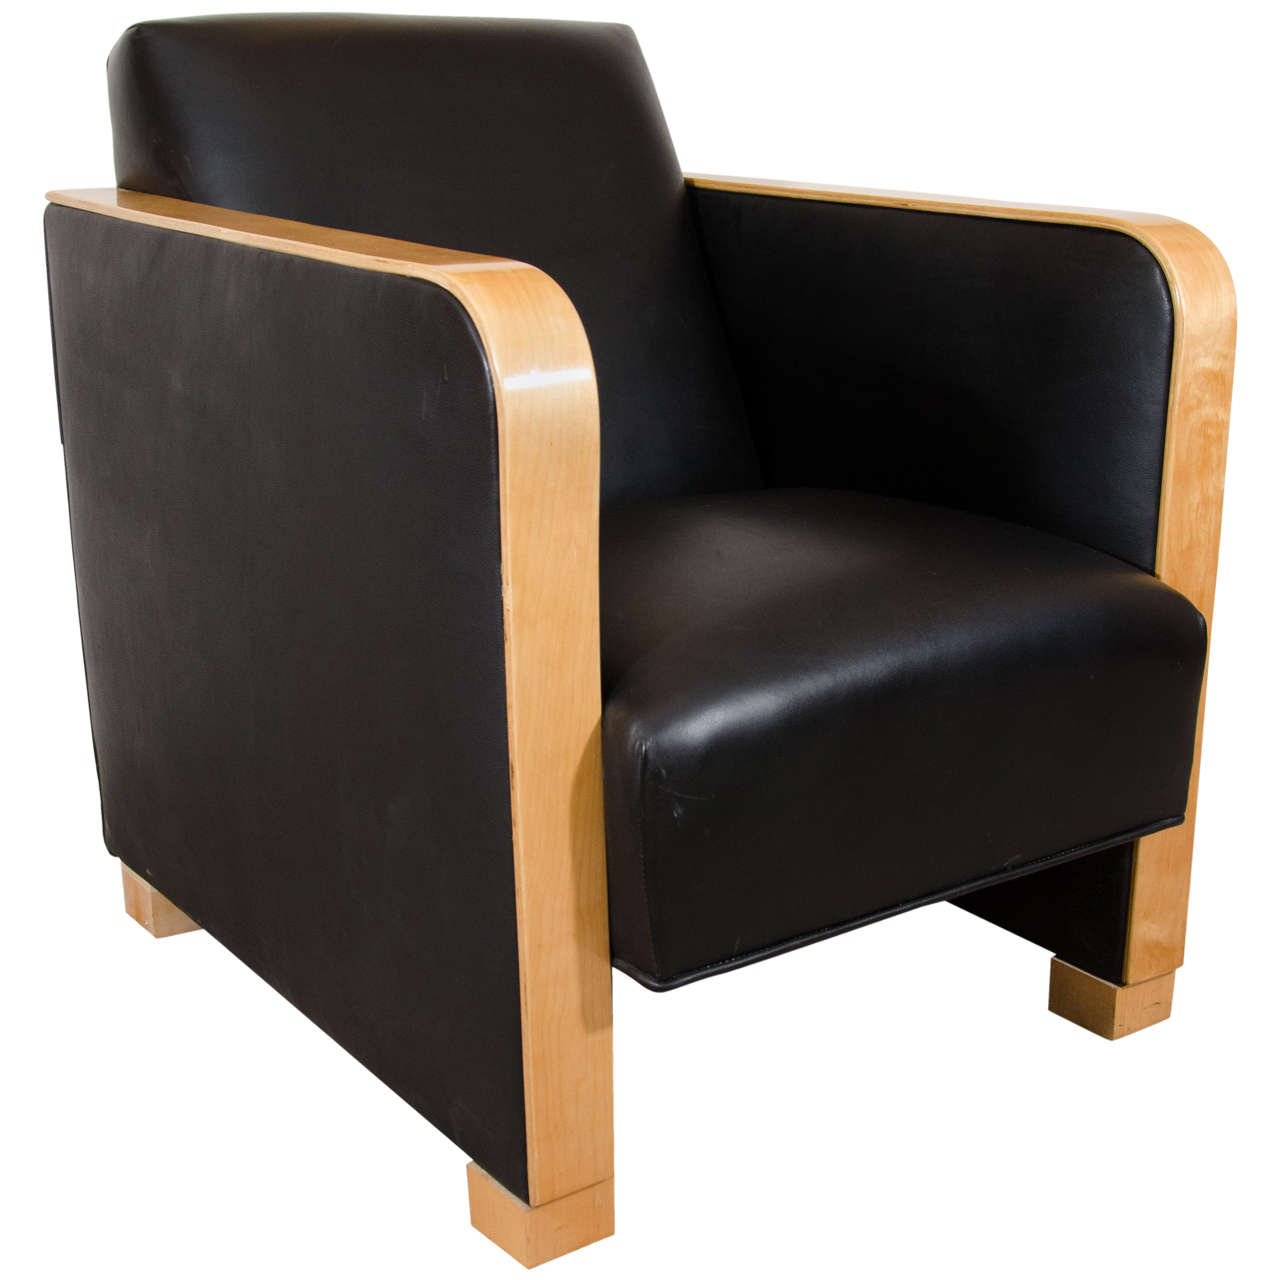 Art Deco Club Chair in Black Motorcycle Leather